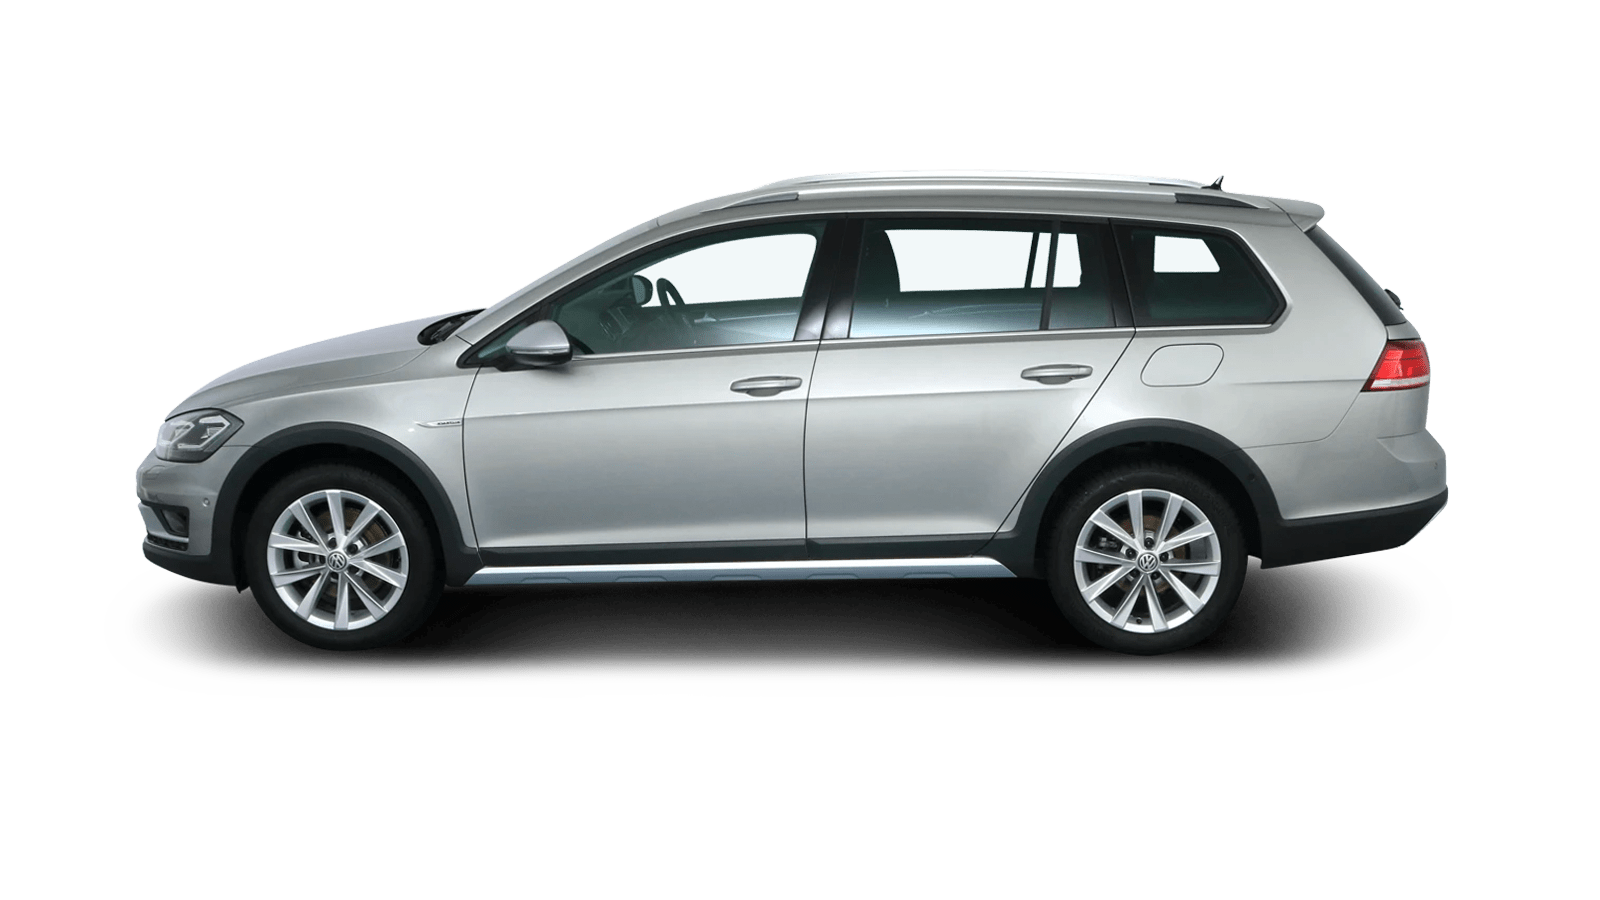 VW Golf Variant Alltrack Silver back - Clyde car subscription